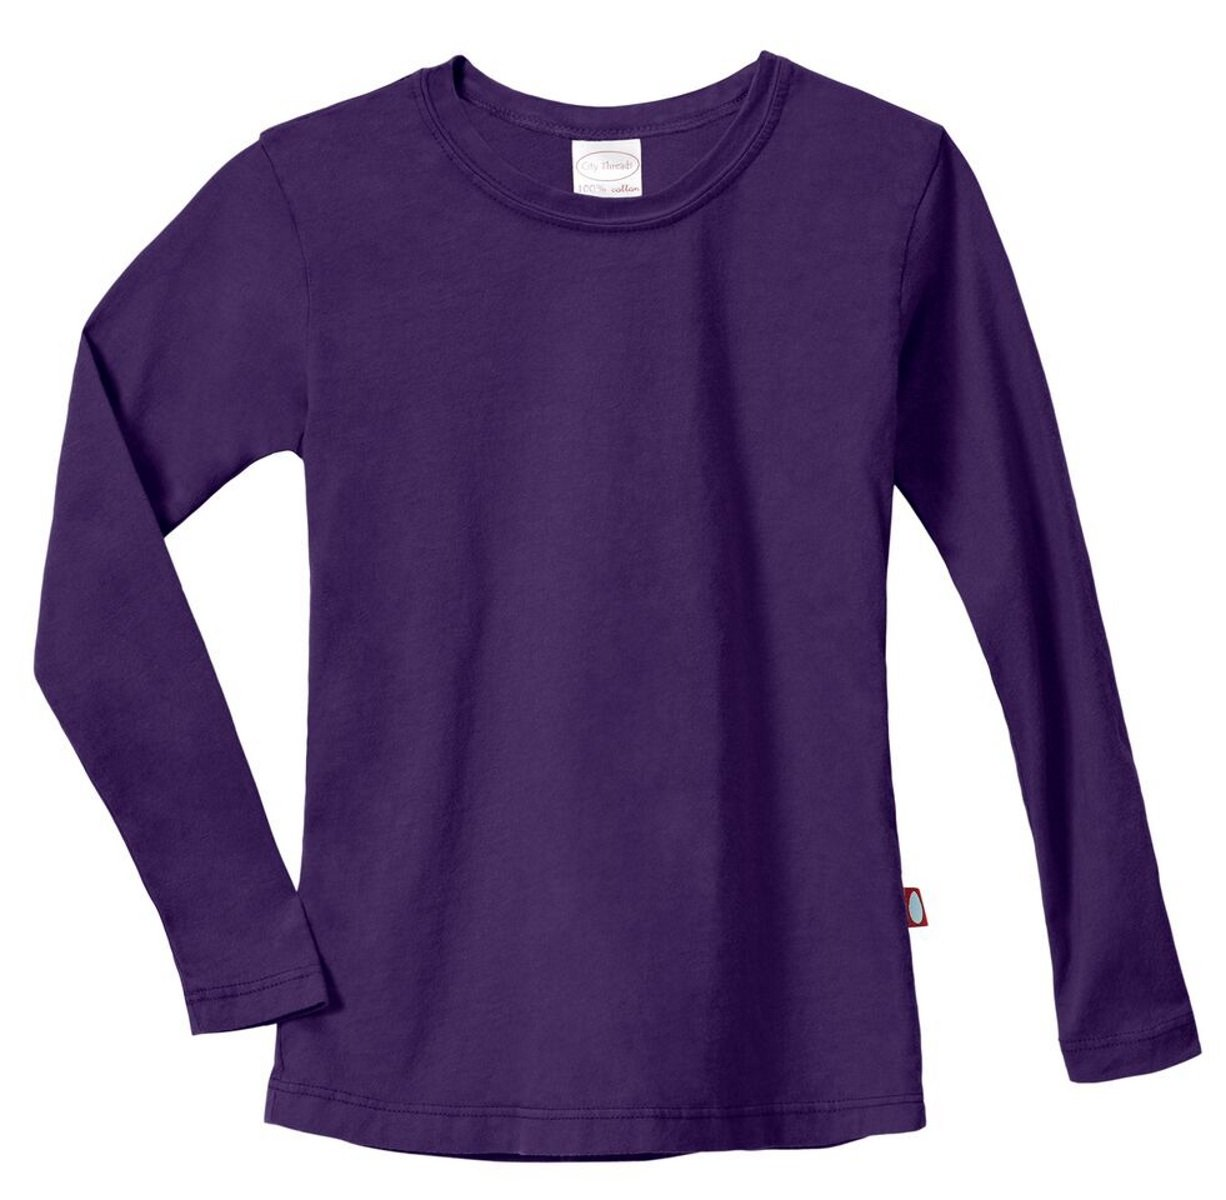 City Threads Girls Long Sleeve Tee Sensory Friendly for Sensitive Skin SPD - School Base Layer Fall and Winter, Purple, 5